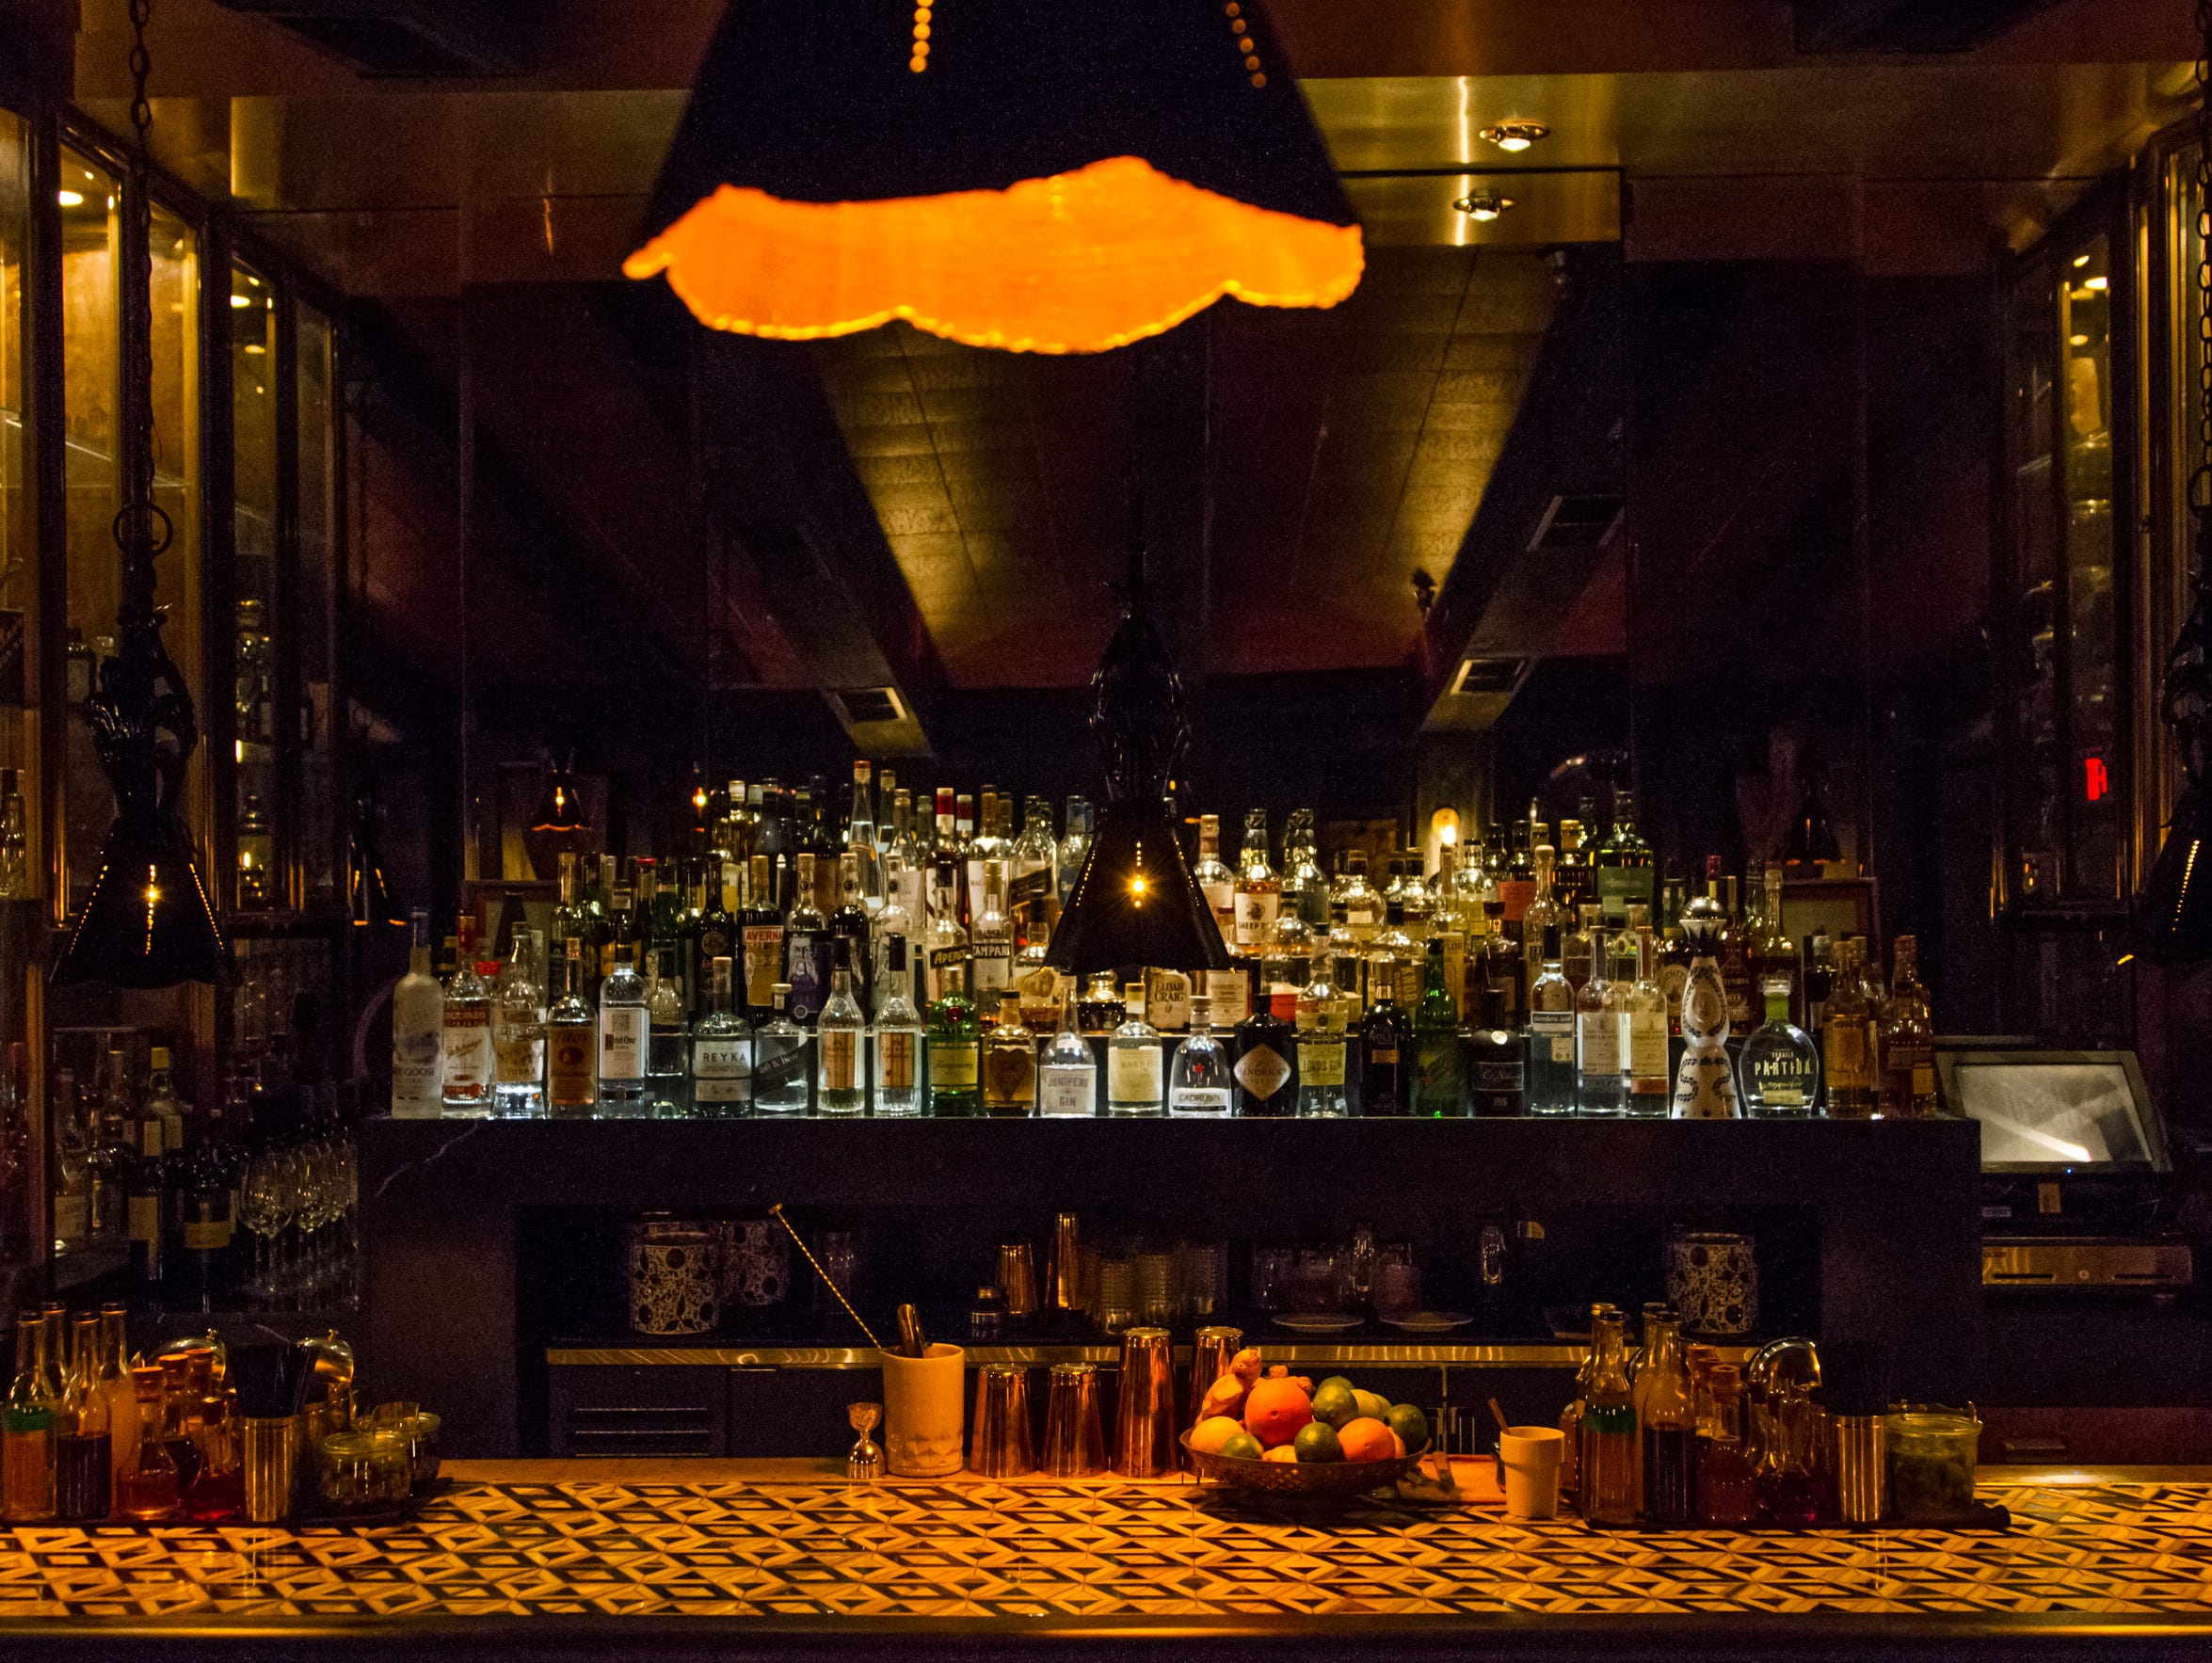 Seymour's back bar is loaded with many craft cocktail